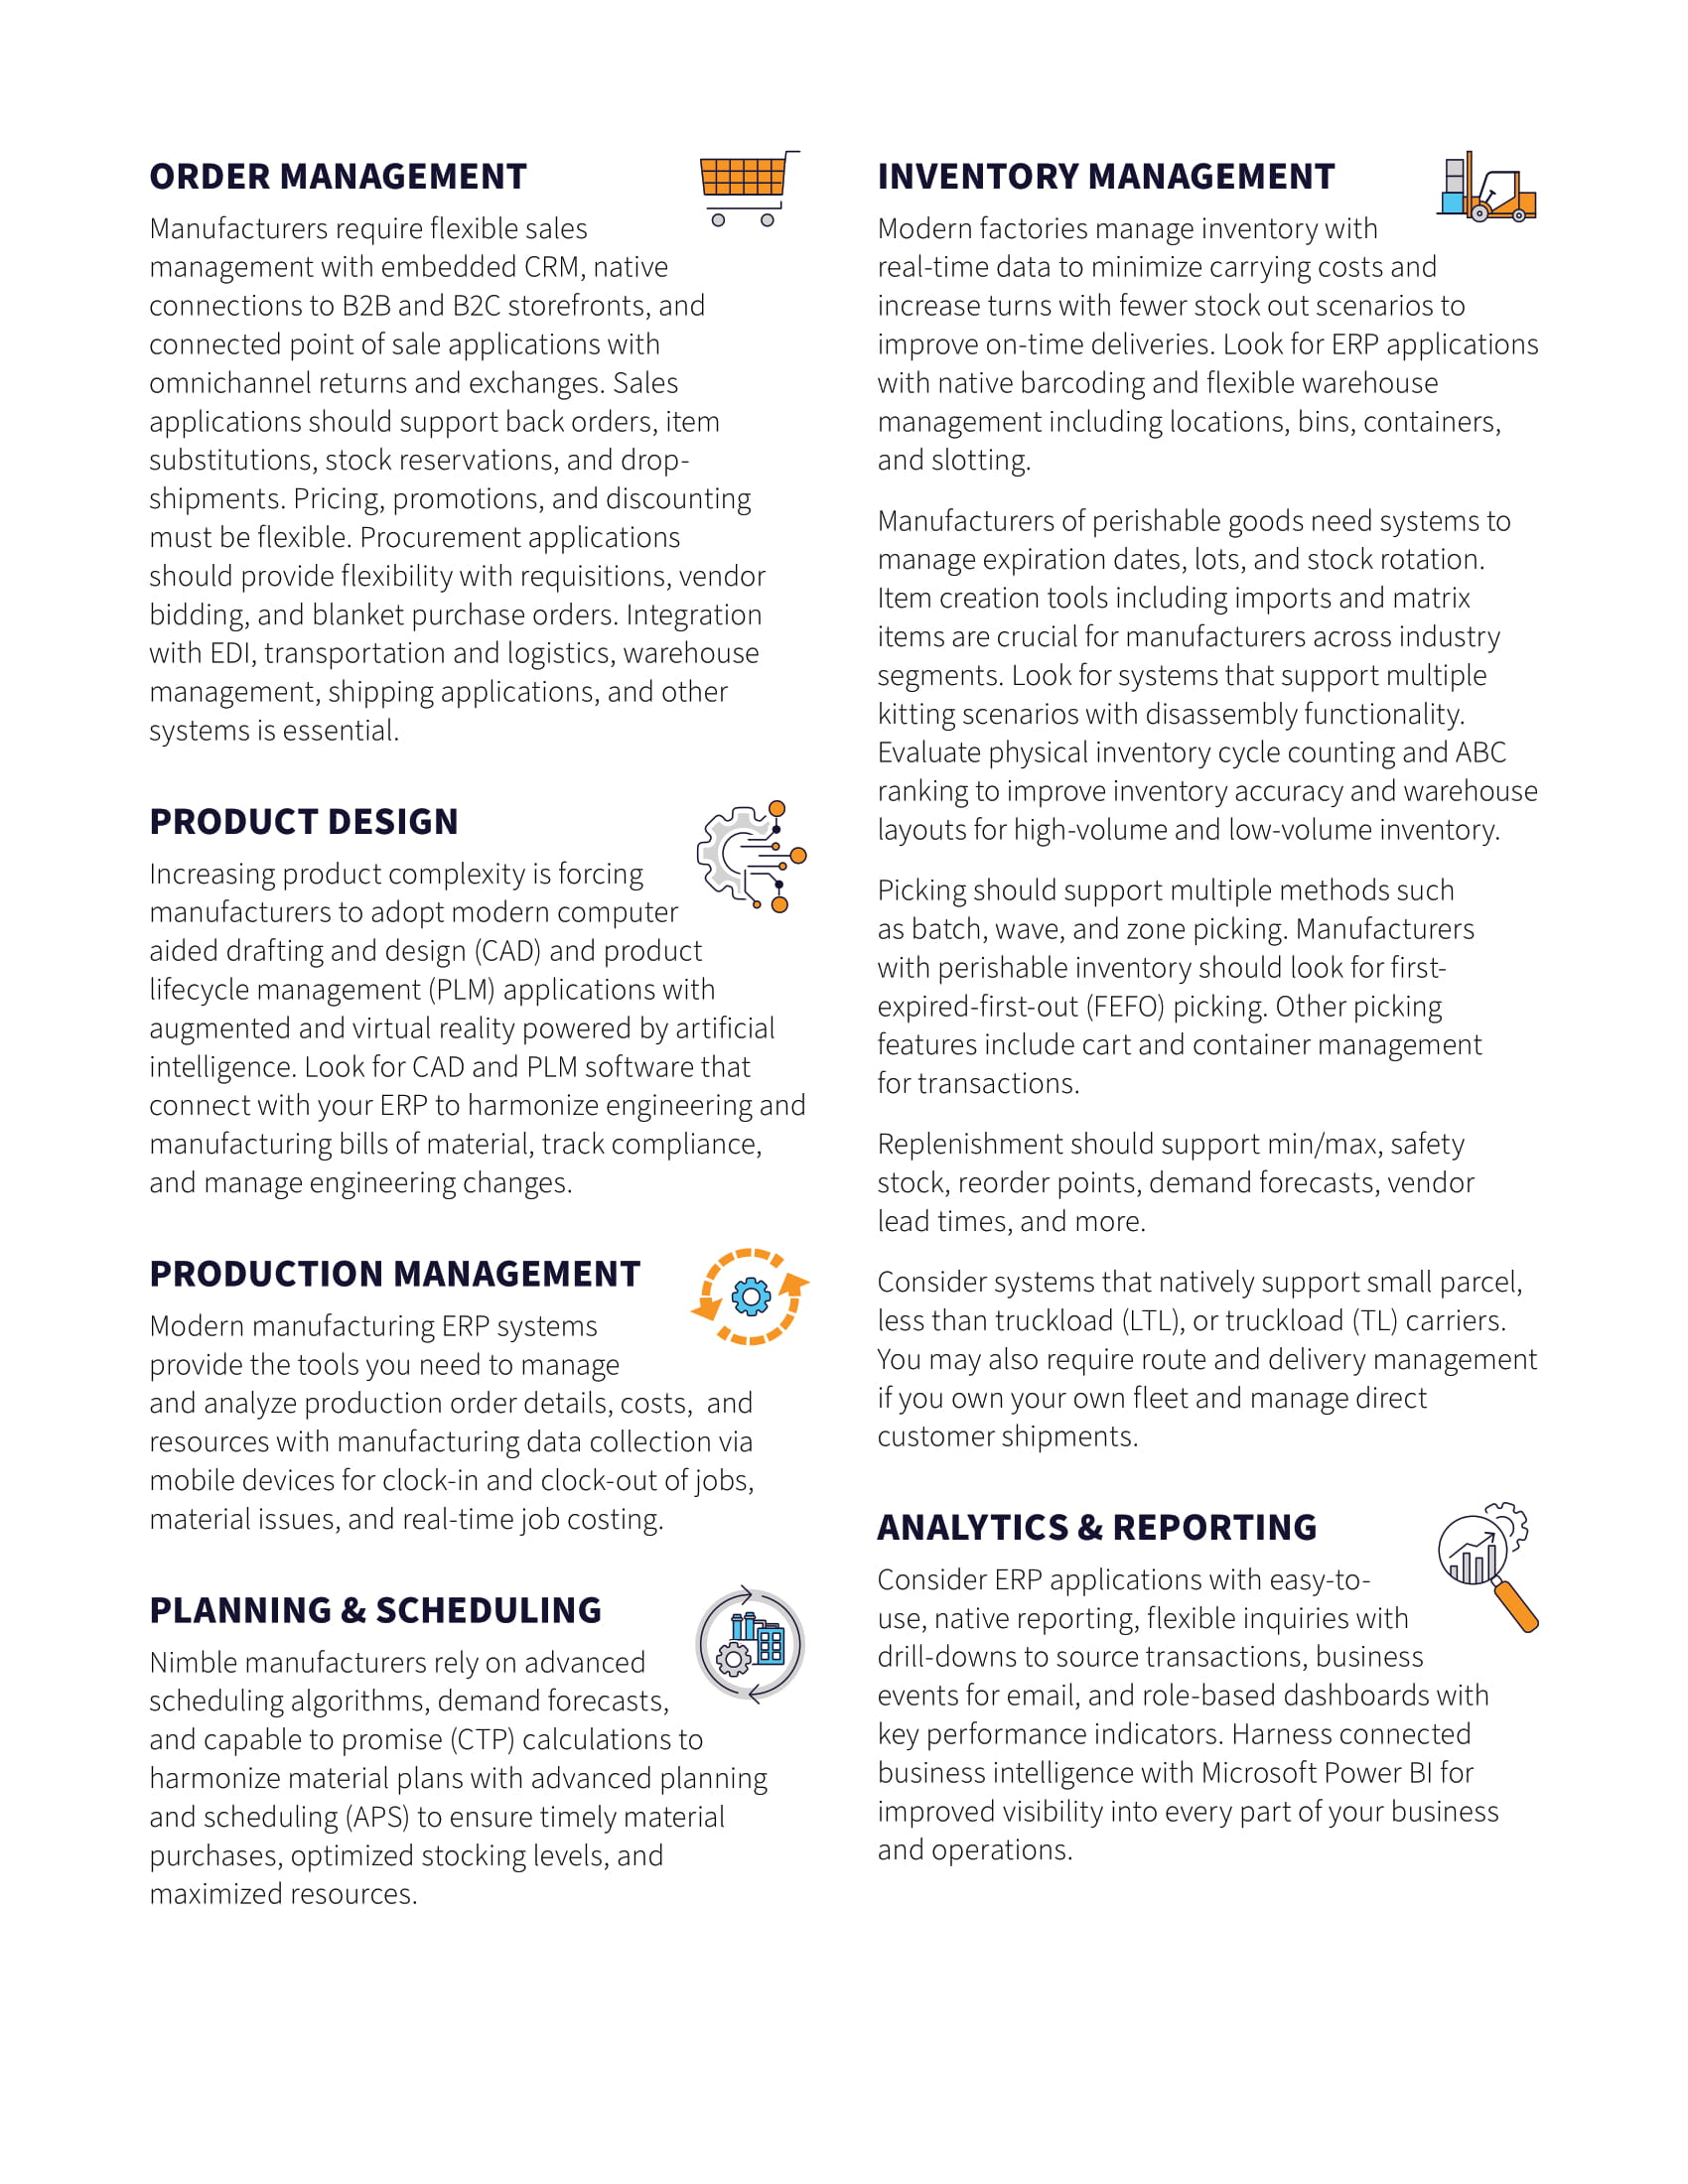 How to Transition to the Factory of the Future, page 2